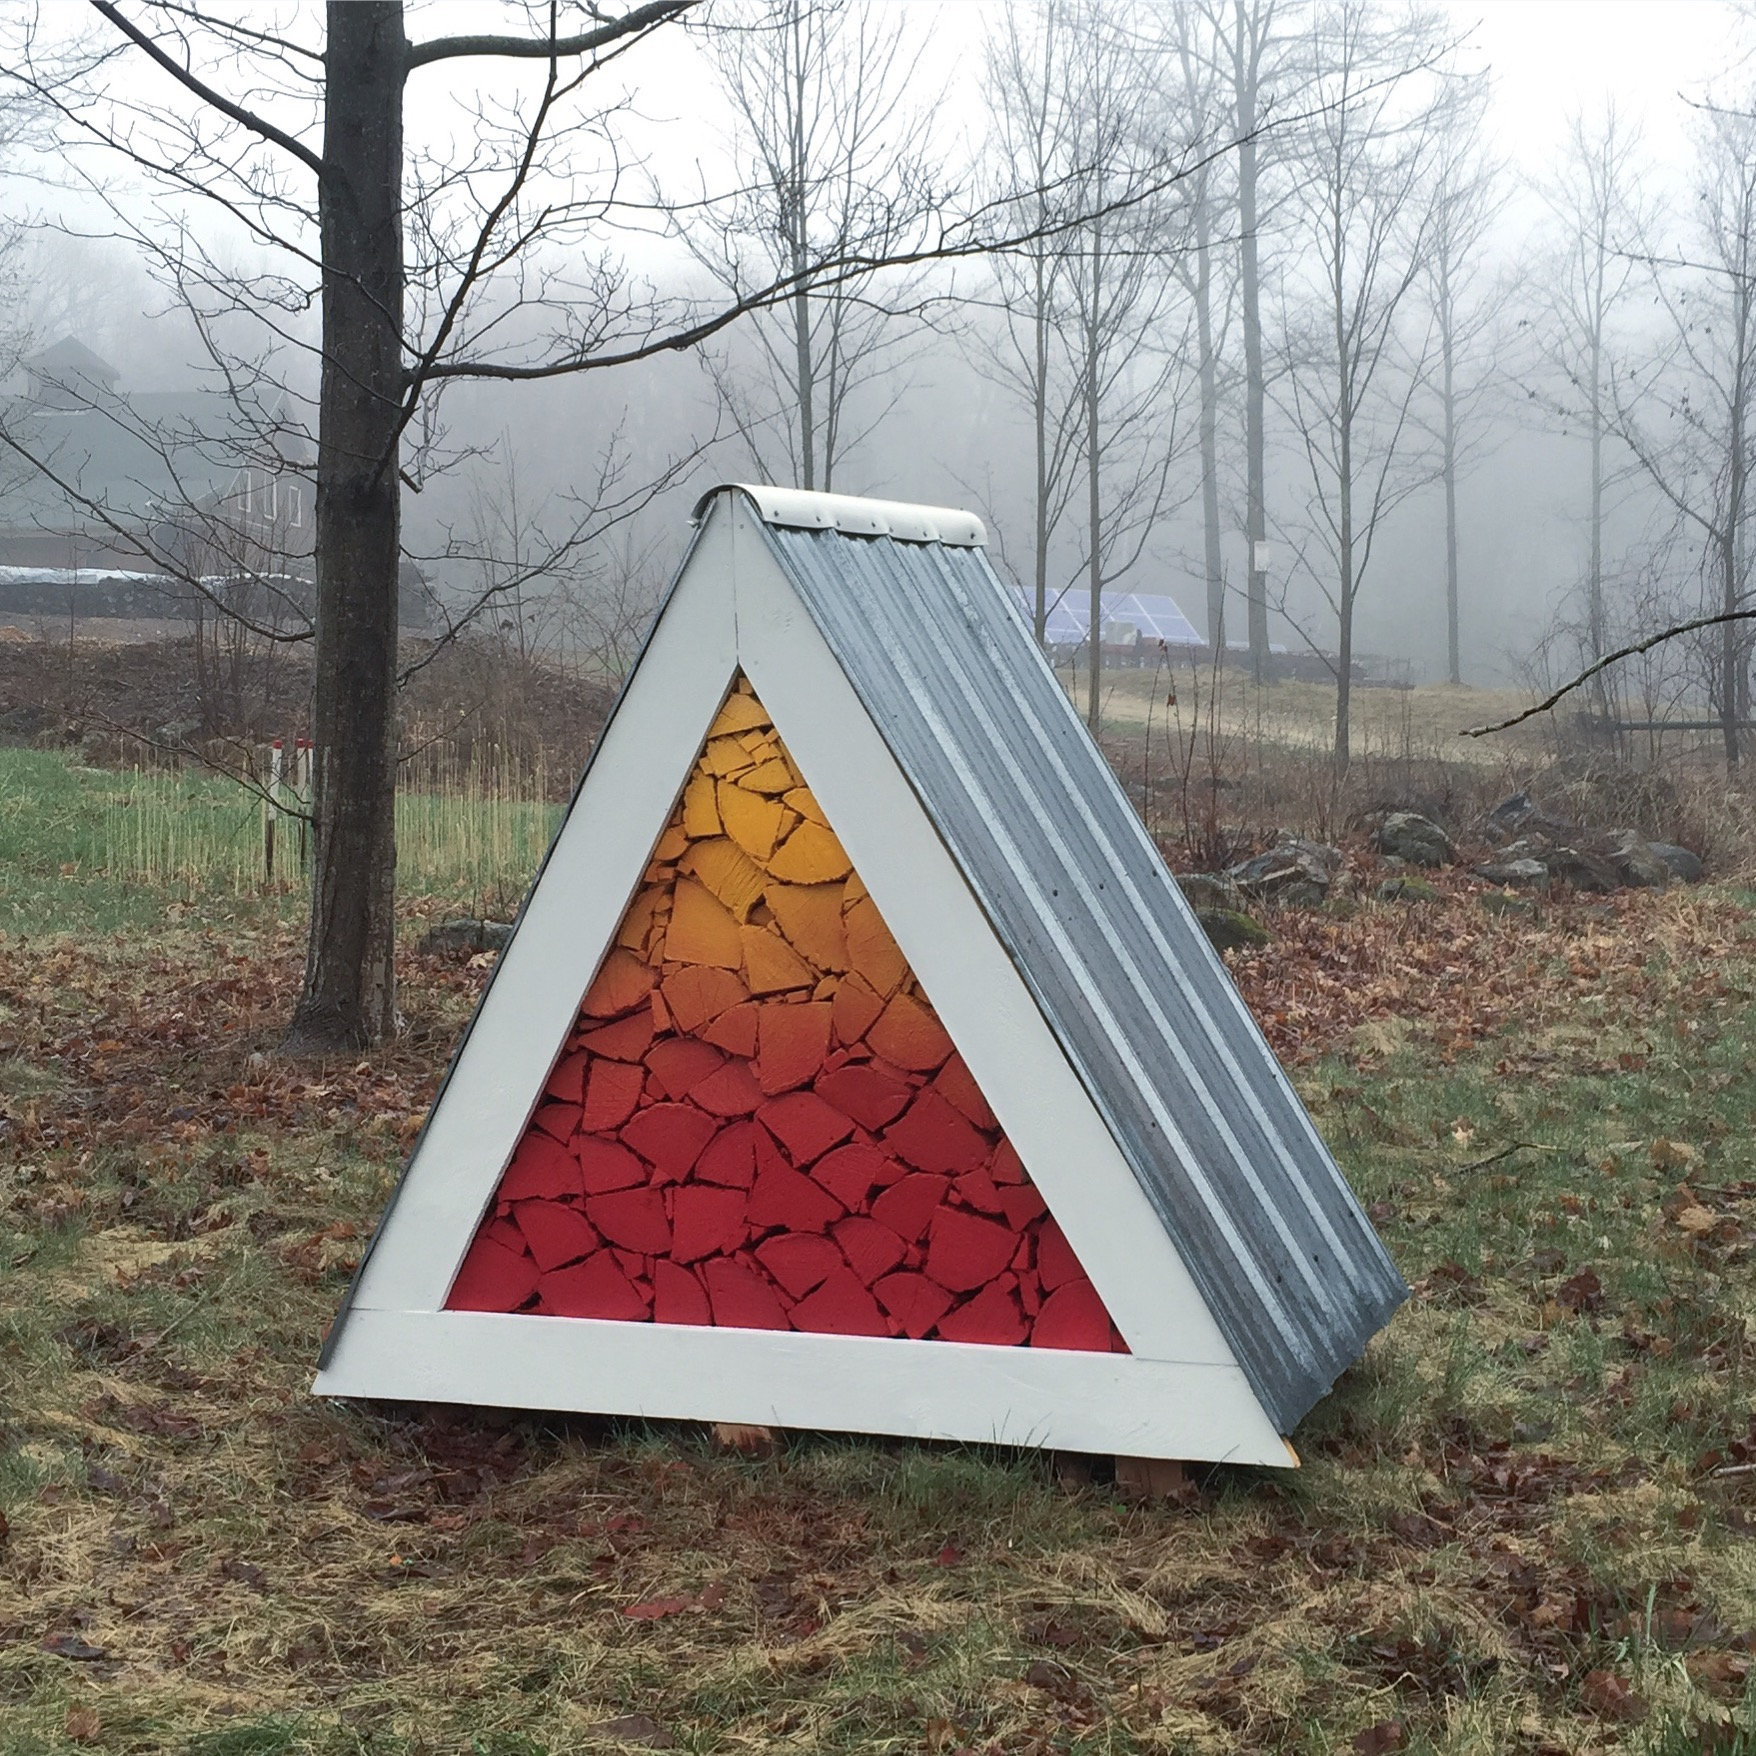 """""""Global Warming Warning,"""" installation at Harvard Forest, 5 X 4 X 4 feet, wood, sheet metal, acrylic paint and assorted hardware, Spring 2017. Collaborators: Jack Kohler Byers and Andrew Bell."""